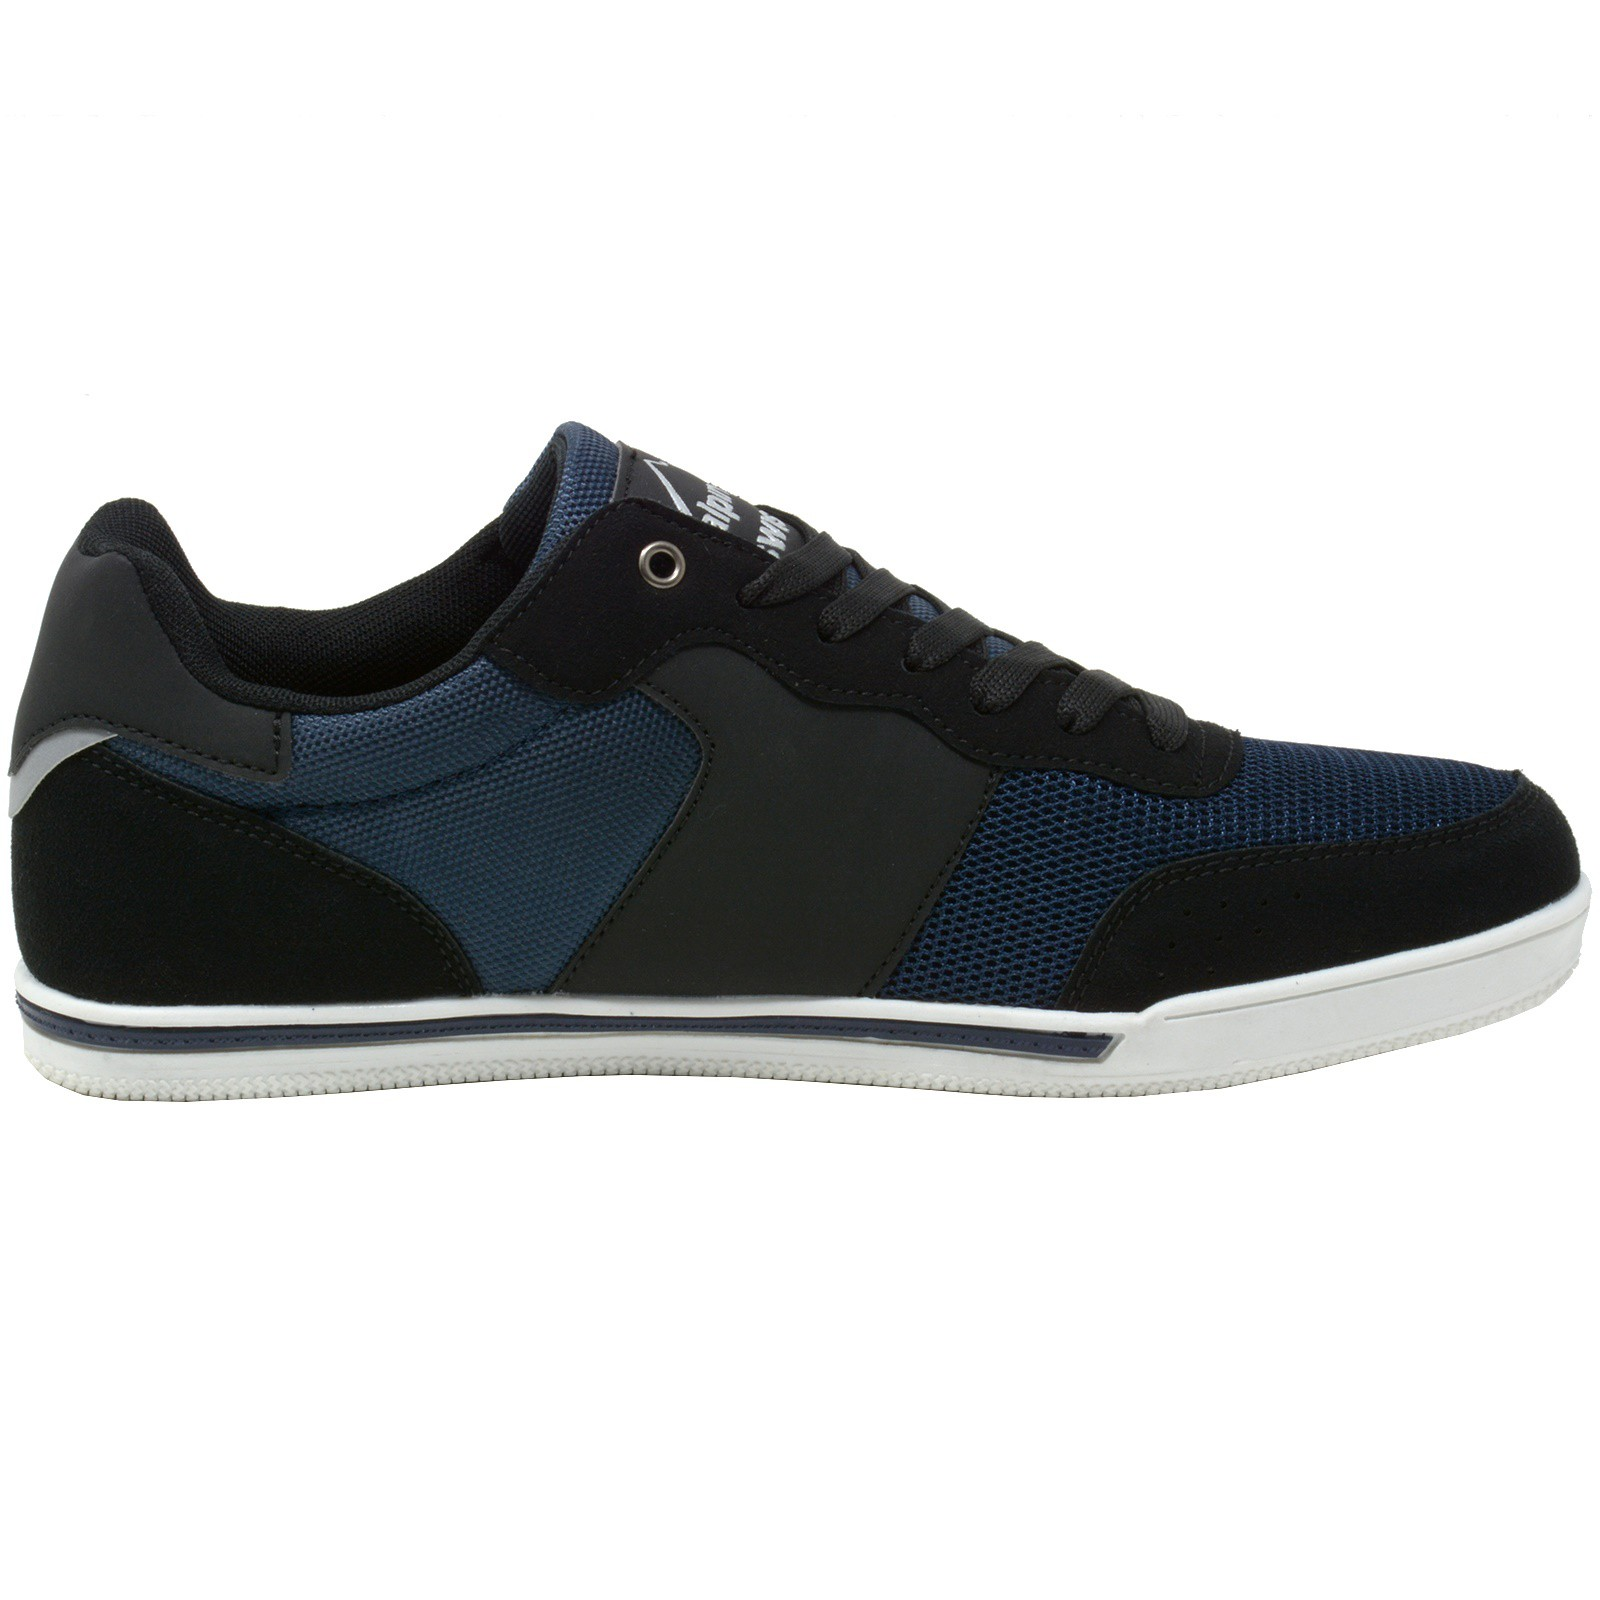 Alpine-Swiss-Liam-Mens-Fashion-Sneakers-Suede-Trim-Low-Top-Lace-Up-Tennis-Shoes thumbnail 34